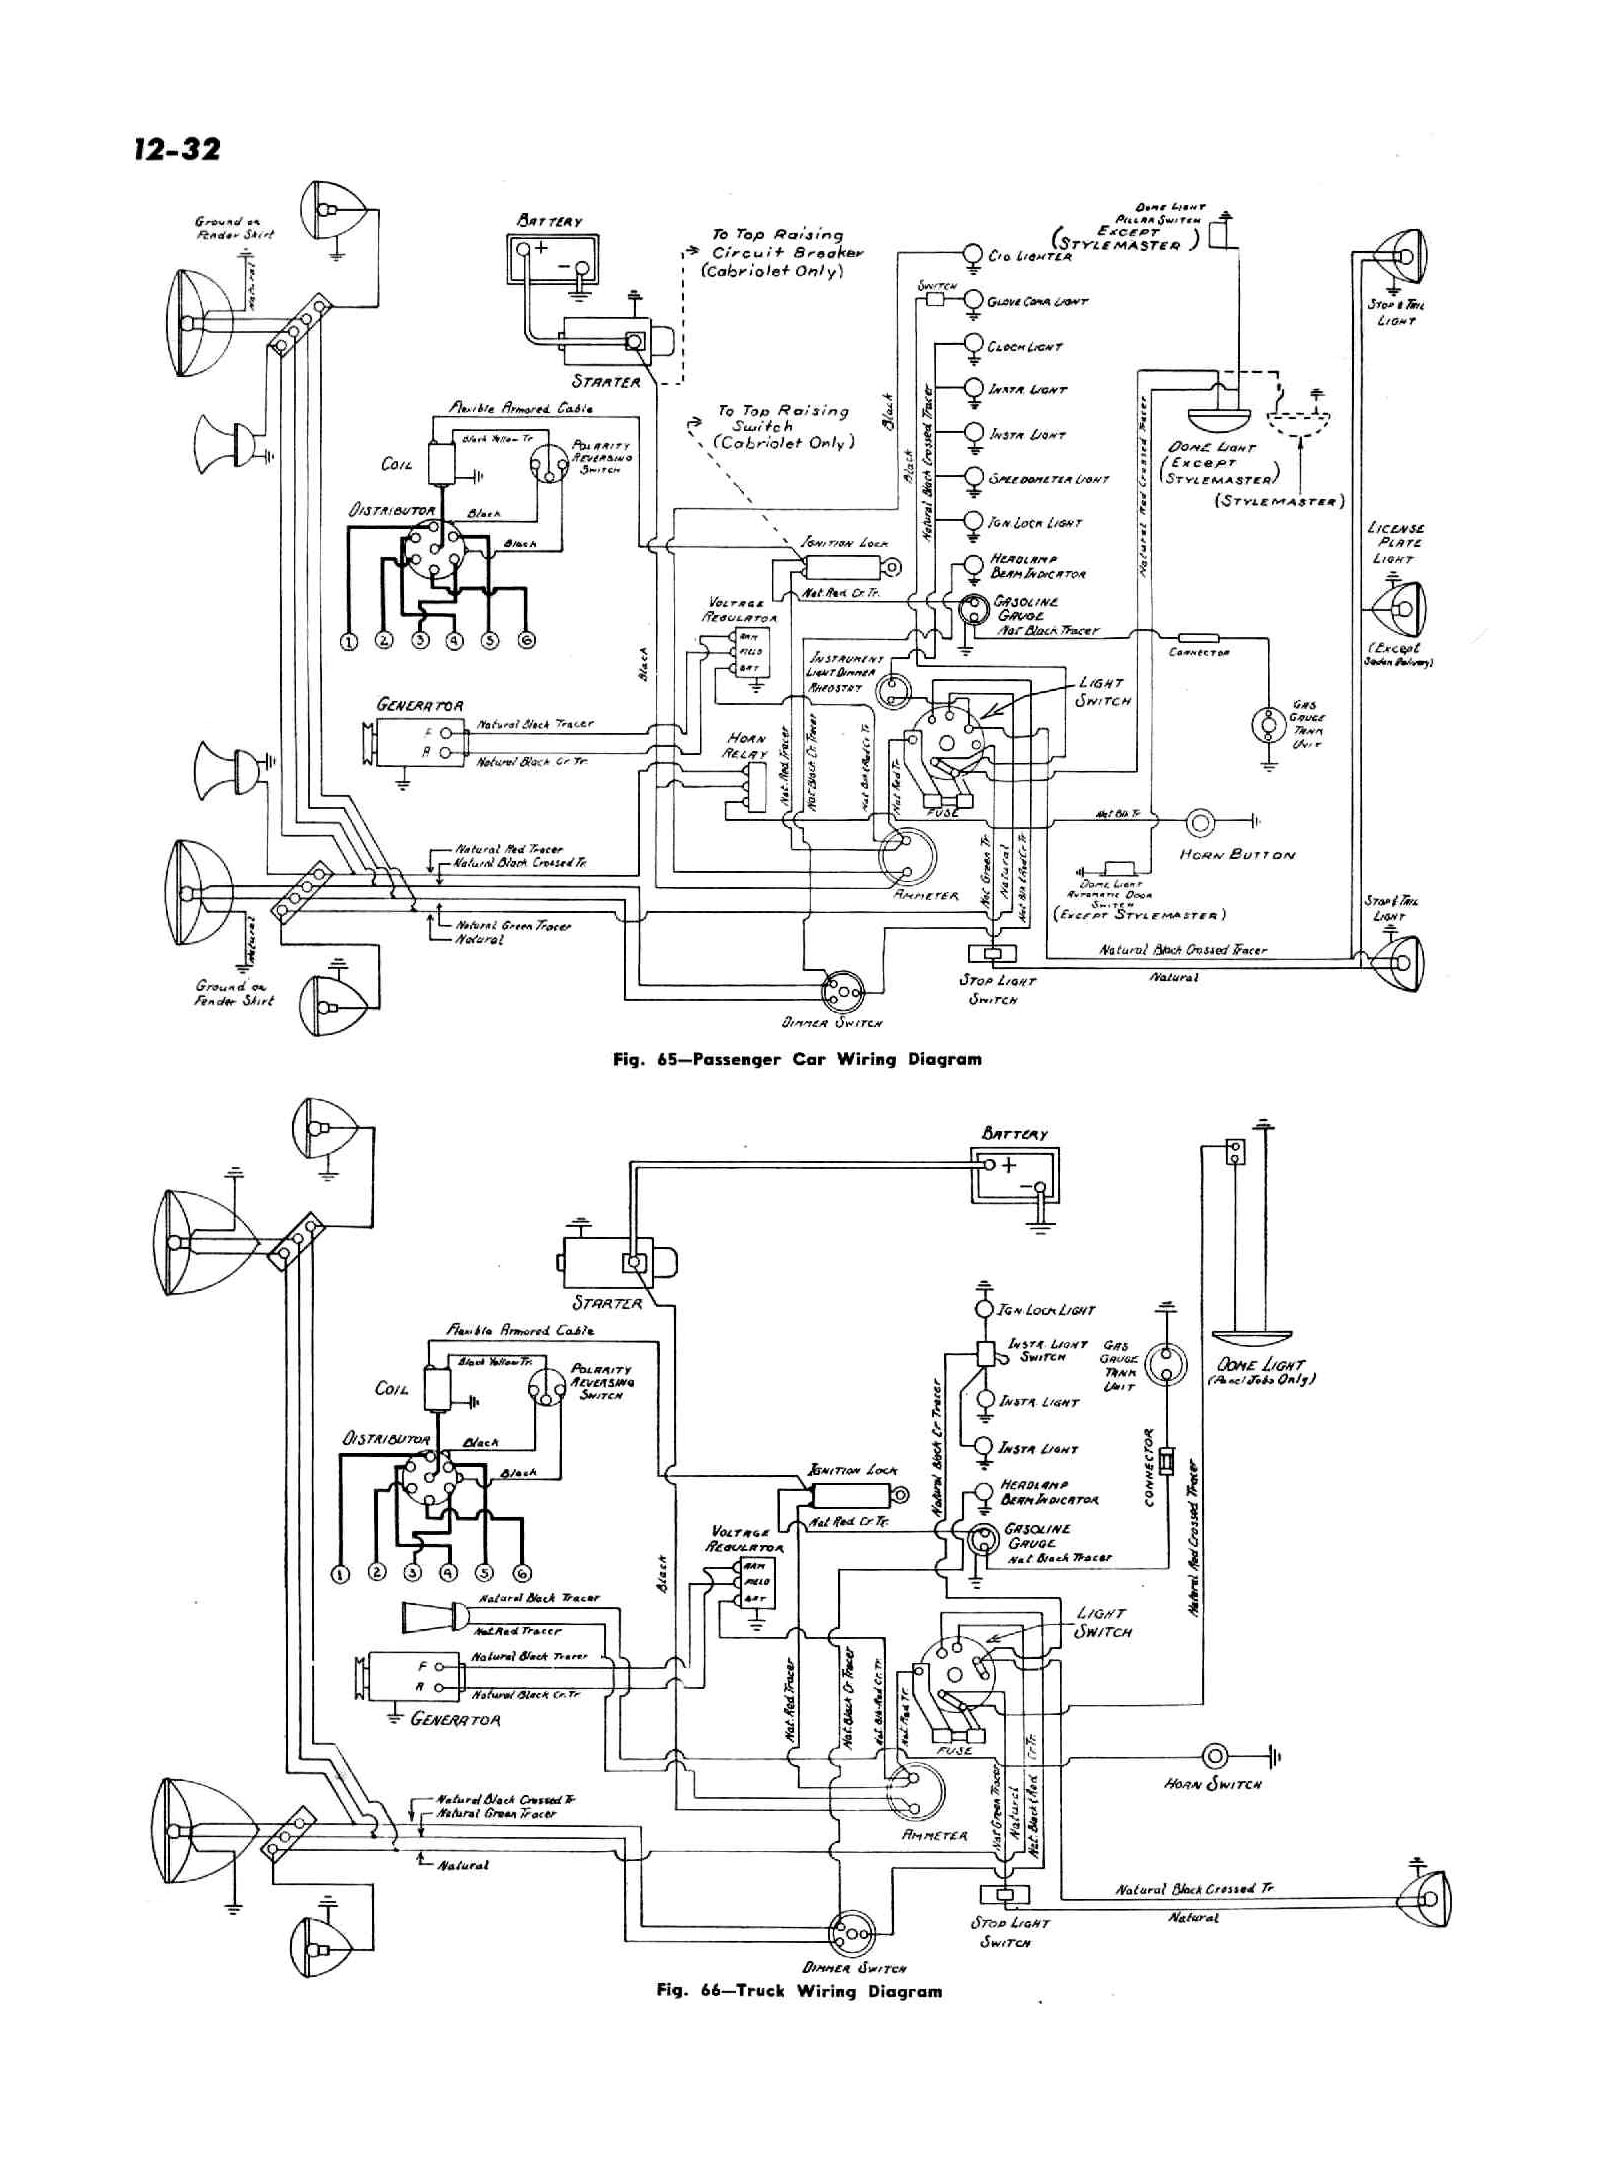 1959 chevy pickup wiring diagram best wiring library 59 Chevy Truck Wiring Diagram wiring diagram for 1959 chevy delivery truck trusted wiring diagram rh 12 nl schoenheitsbrieftaube de 1959